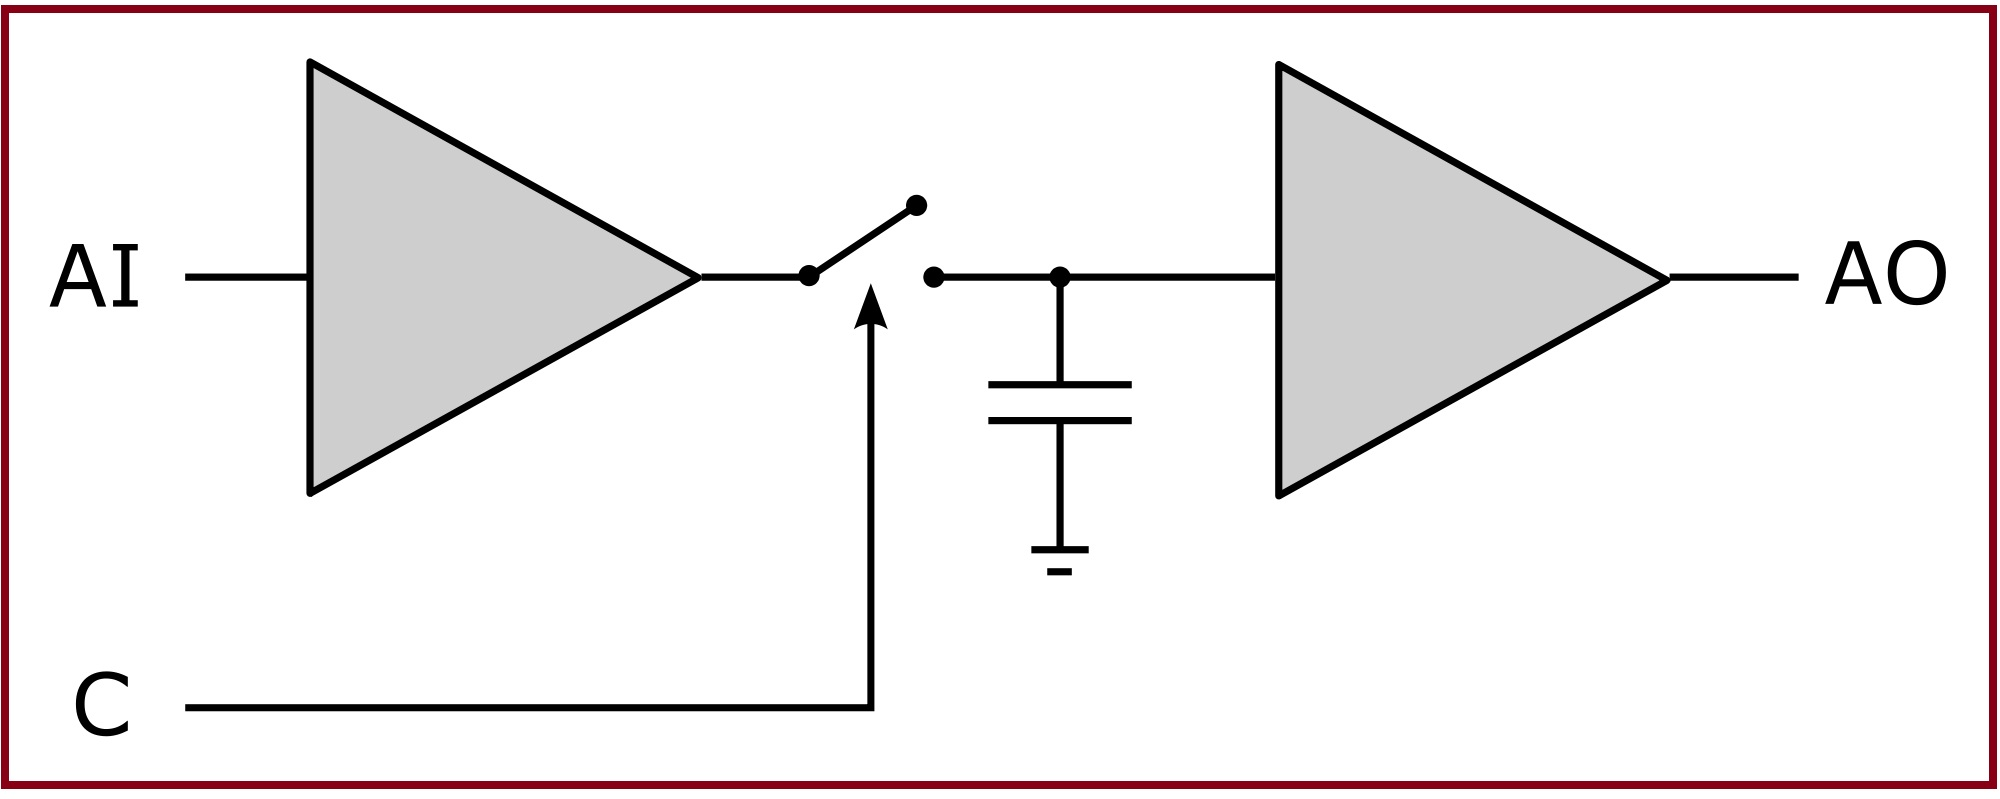 Designing Of A Sample And Hold Circuit Using Op Amp Simply Connects The Comparator Inverting Input To Voltage